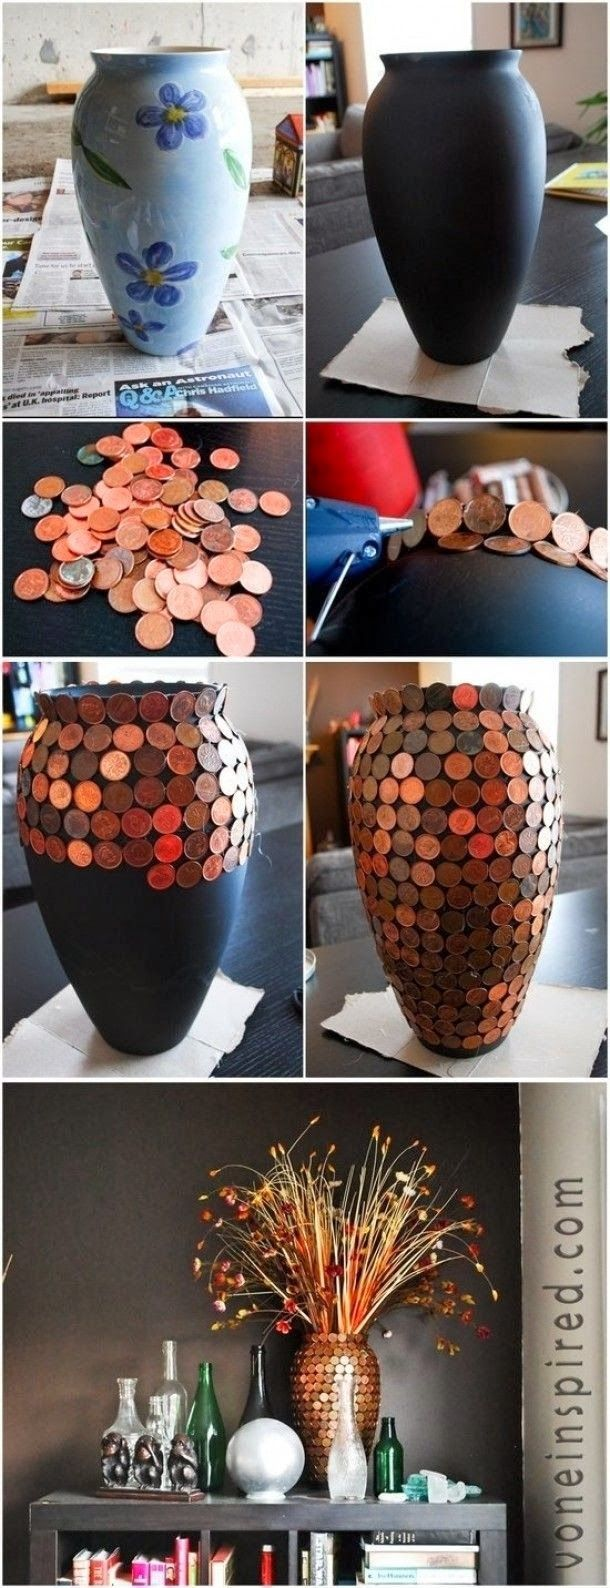 Use Those Old Pennies to Spruce Up an Old Vase! #DIY - Canadian Basics